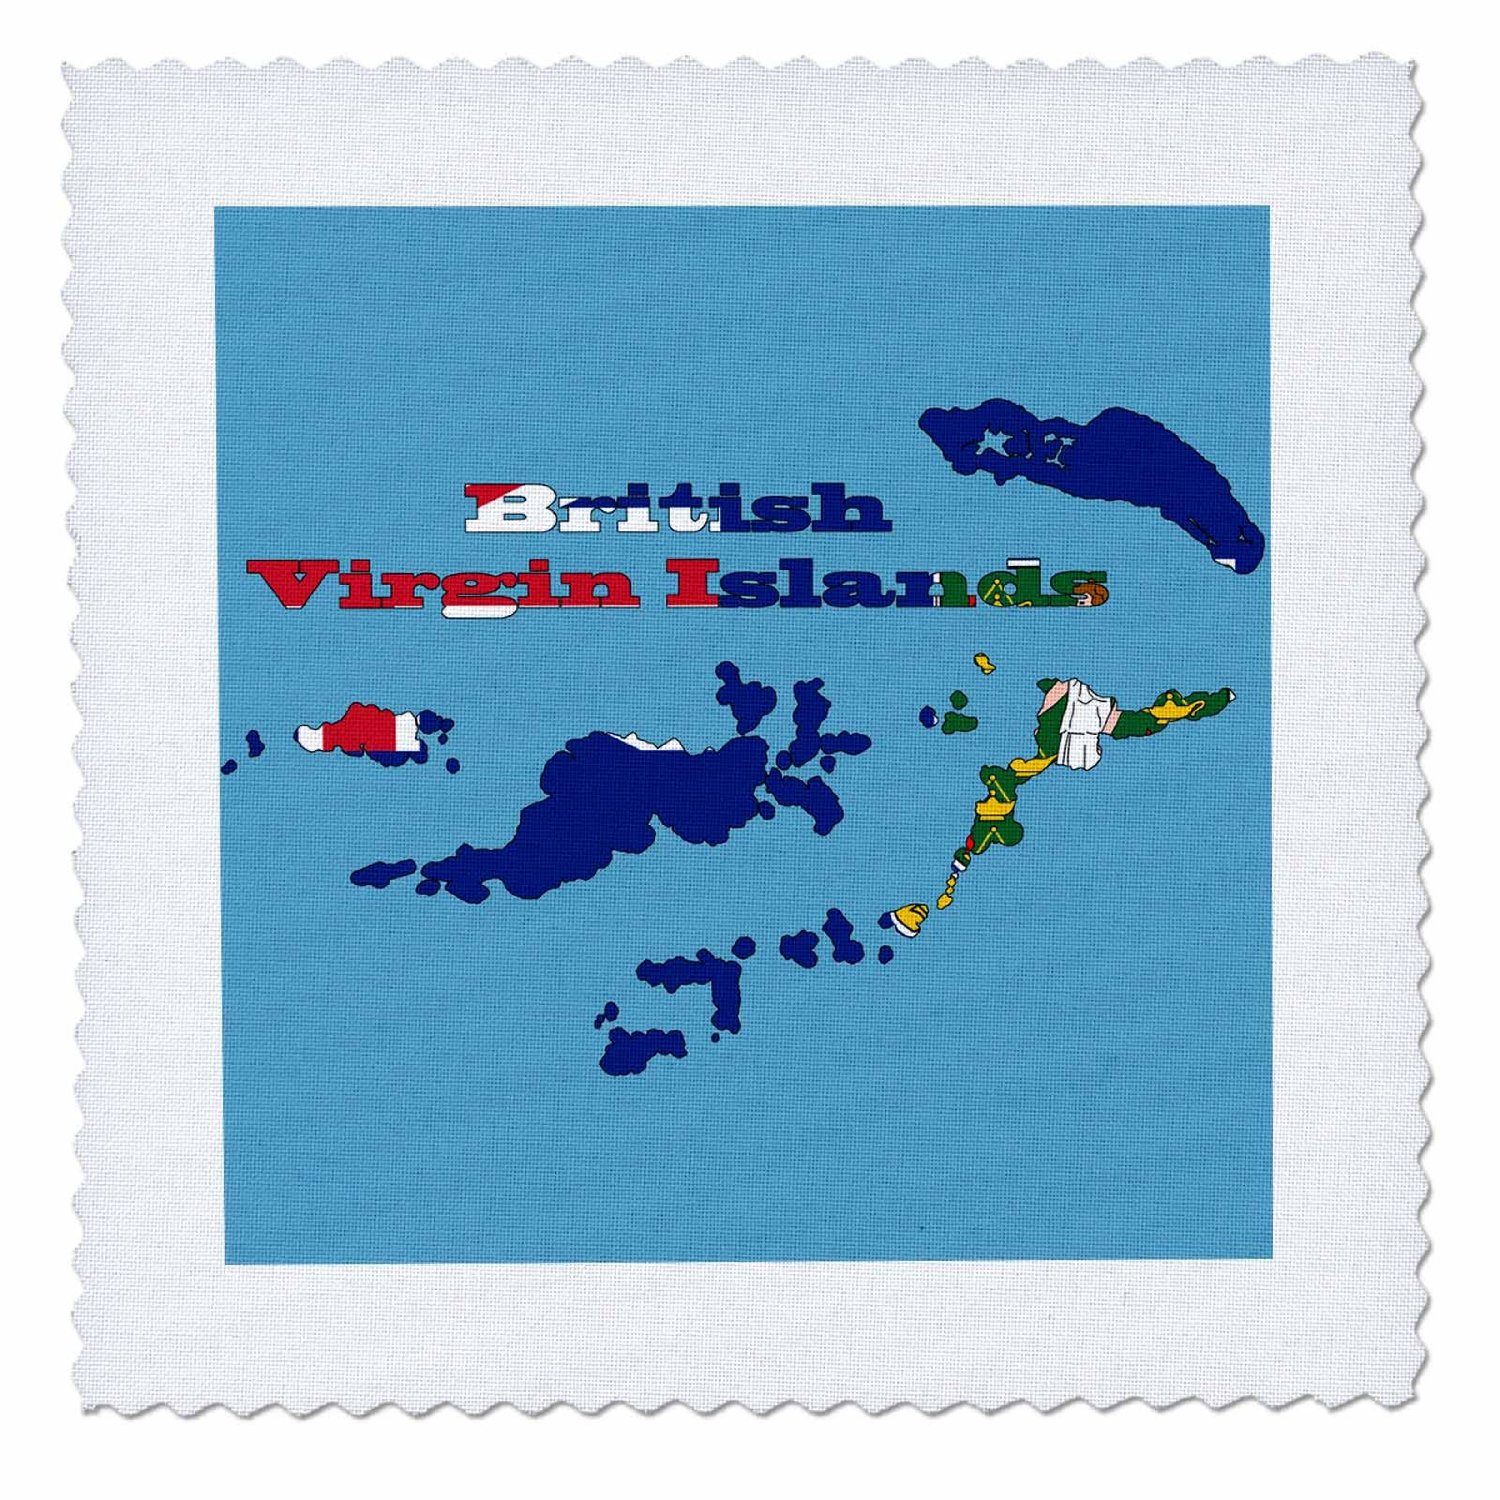 777images Flags and Maps - Caribbean - BVI Flag in outline map and name British Virgin Islands - 10x10 inch quilt square (qs_184178_1)